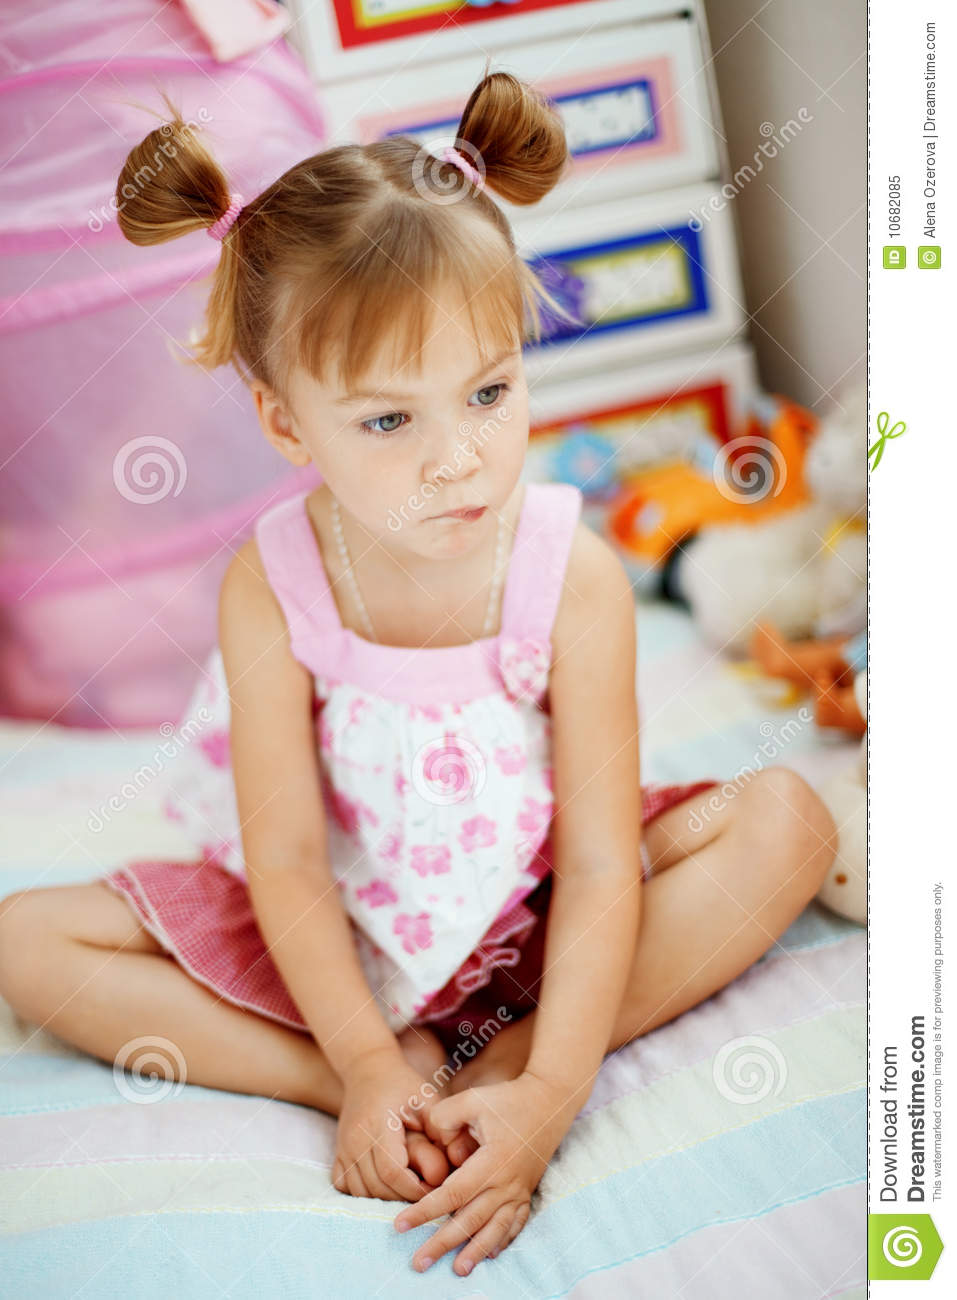 Pretty Little Girl Sitting Stock Photo - Download Image